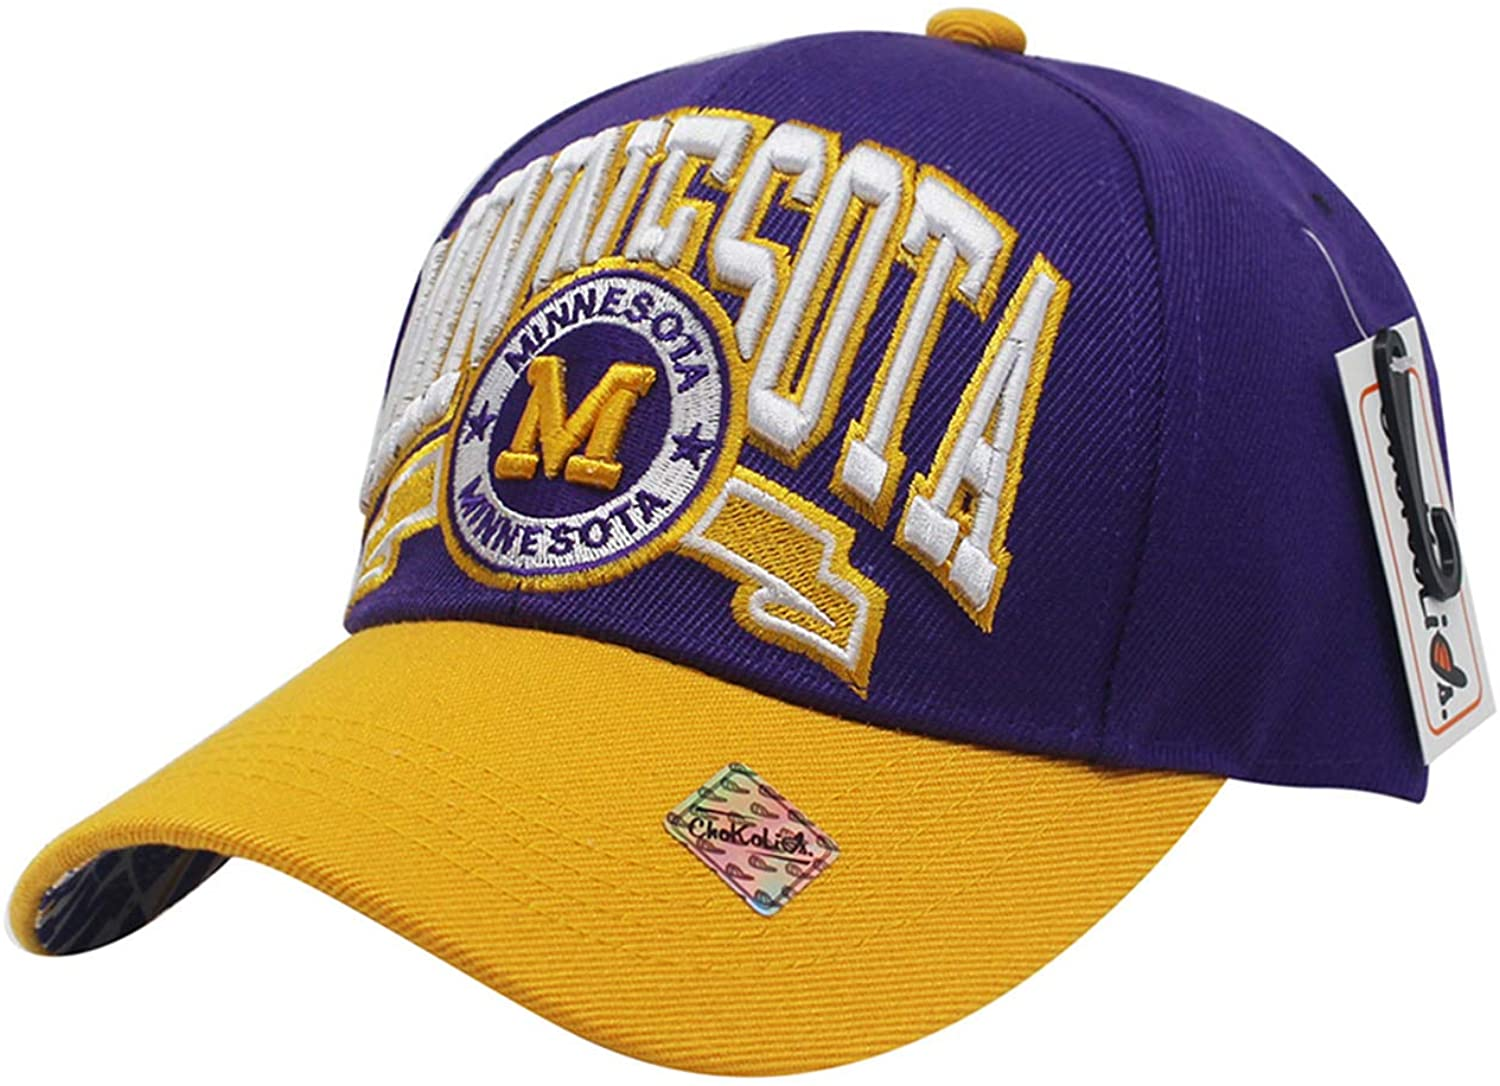 Team Color City Name Embroidered Baseball Cap Hat Unisex Football Basketball TBC001